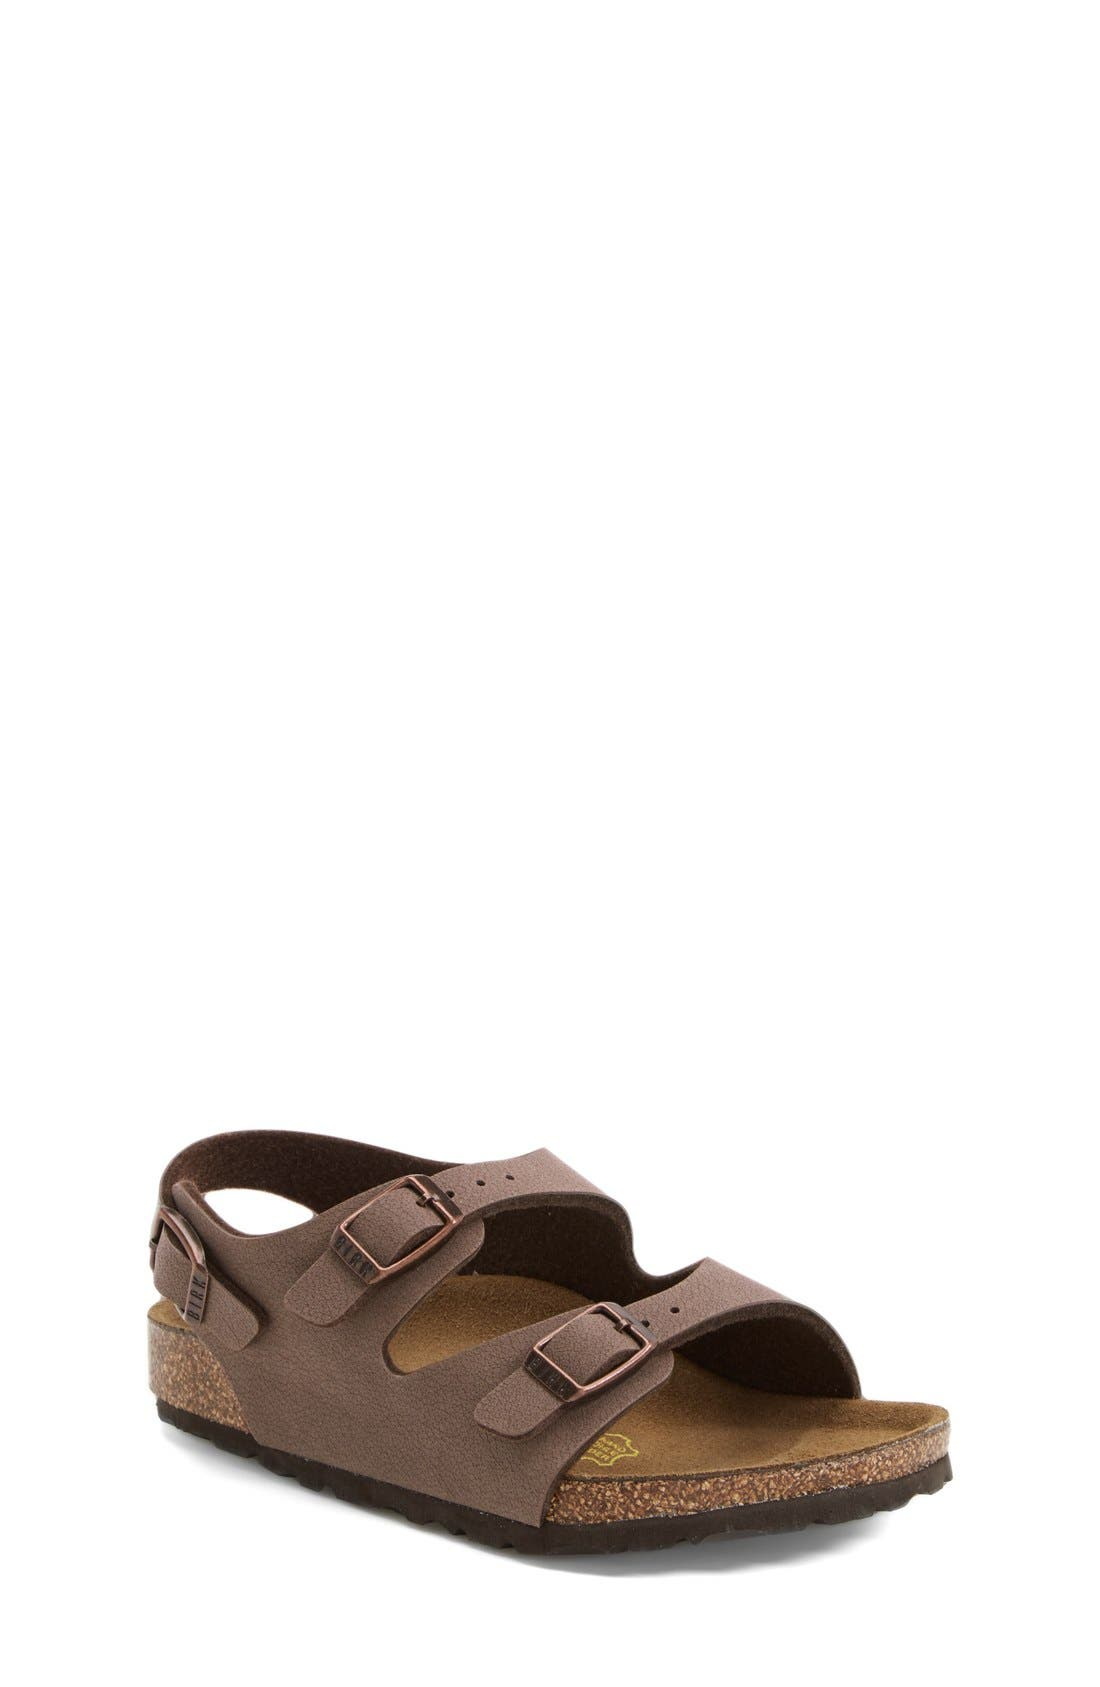 Alternate Image 1 Selected - Birkenstock 'Roma' Sandal (Walker, Toddler & Little Kid)